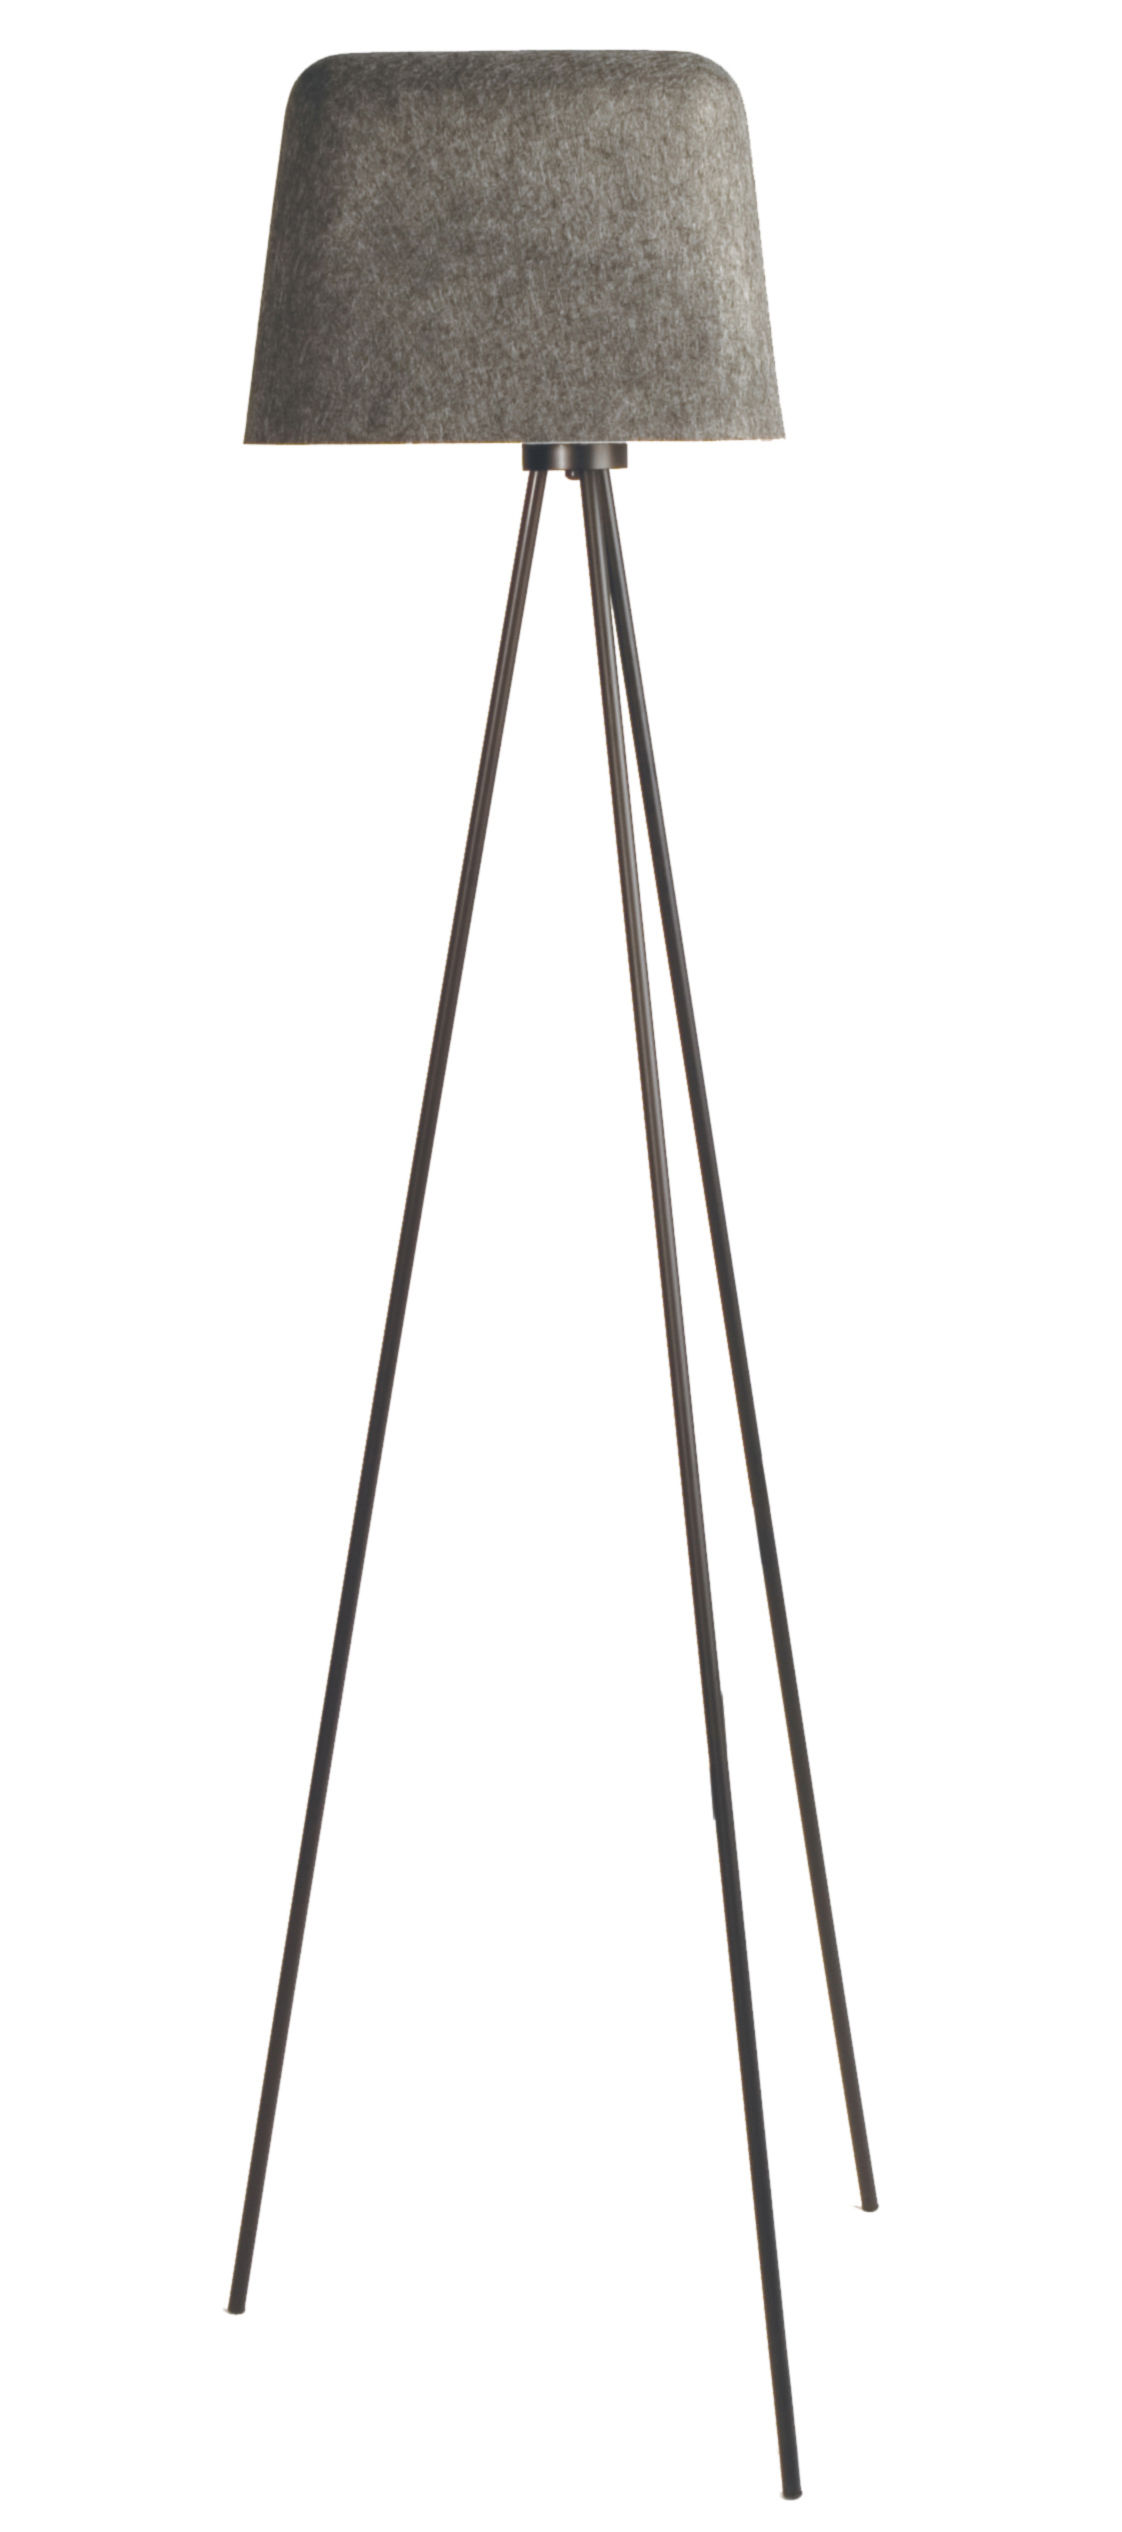 Lighting - Floor lamps - Felt Shade Floor lamp by Tom Dixon - Grey - Felt, Metal